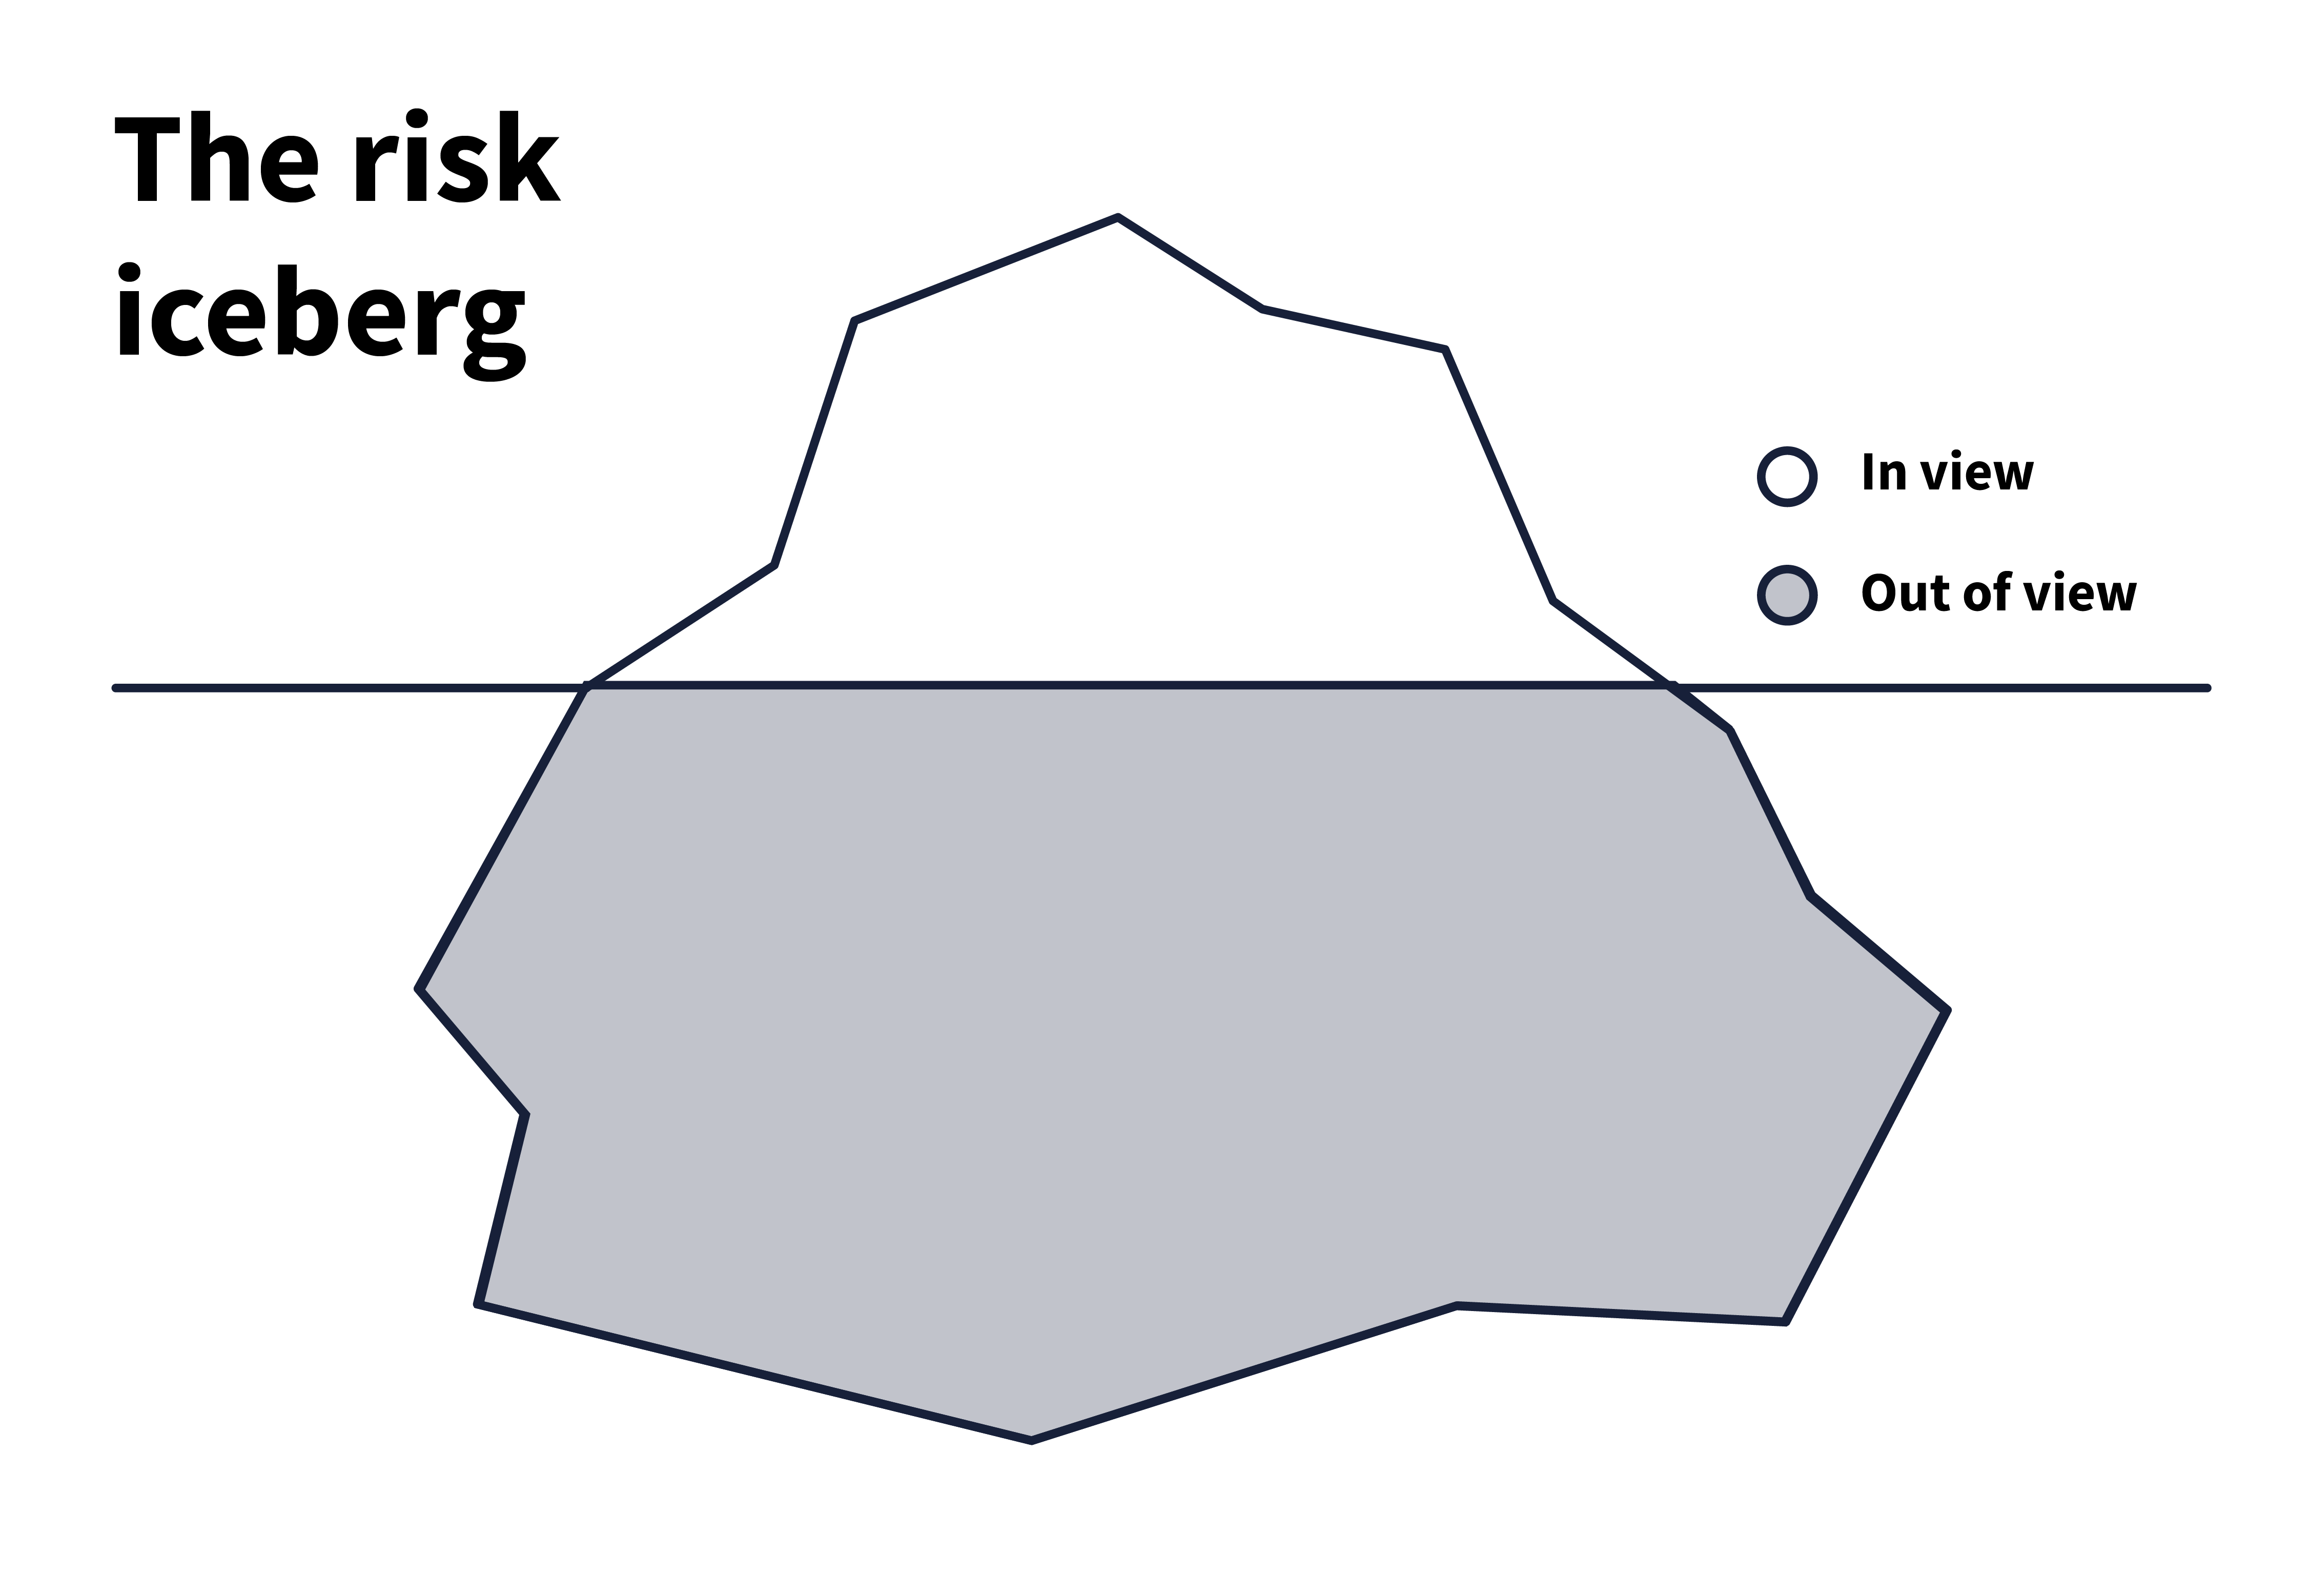 An iceberg, mostly submerged, that represents the risk a company faces.